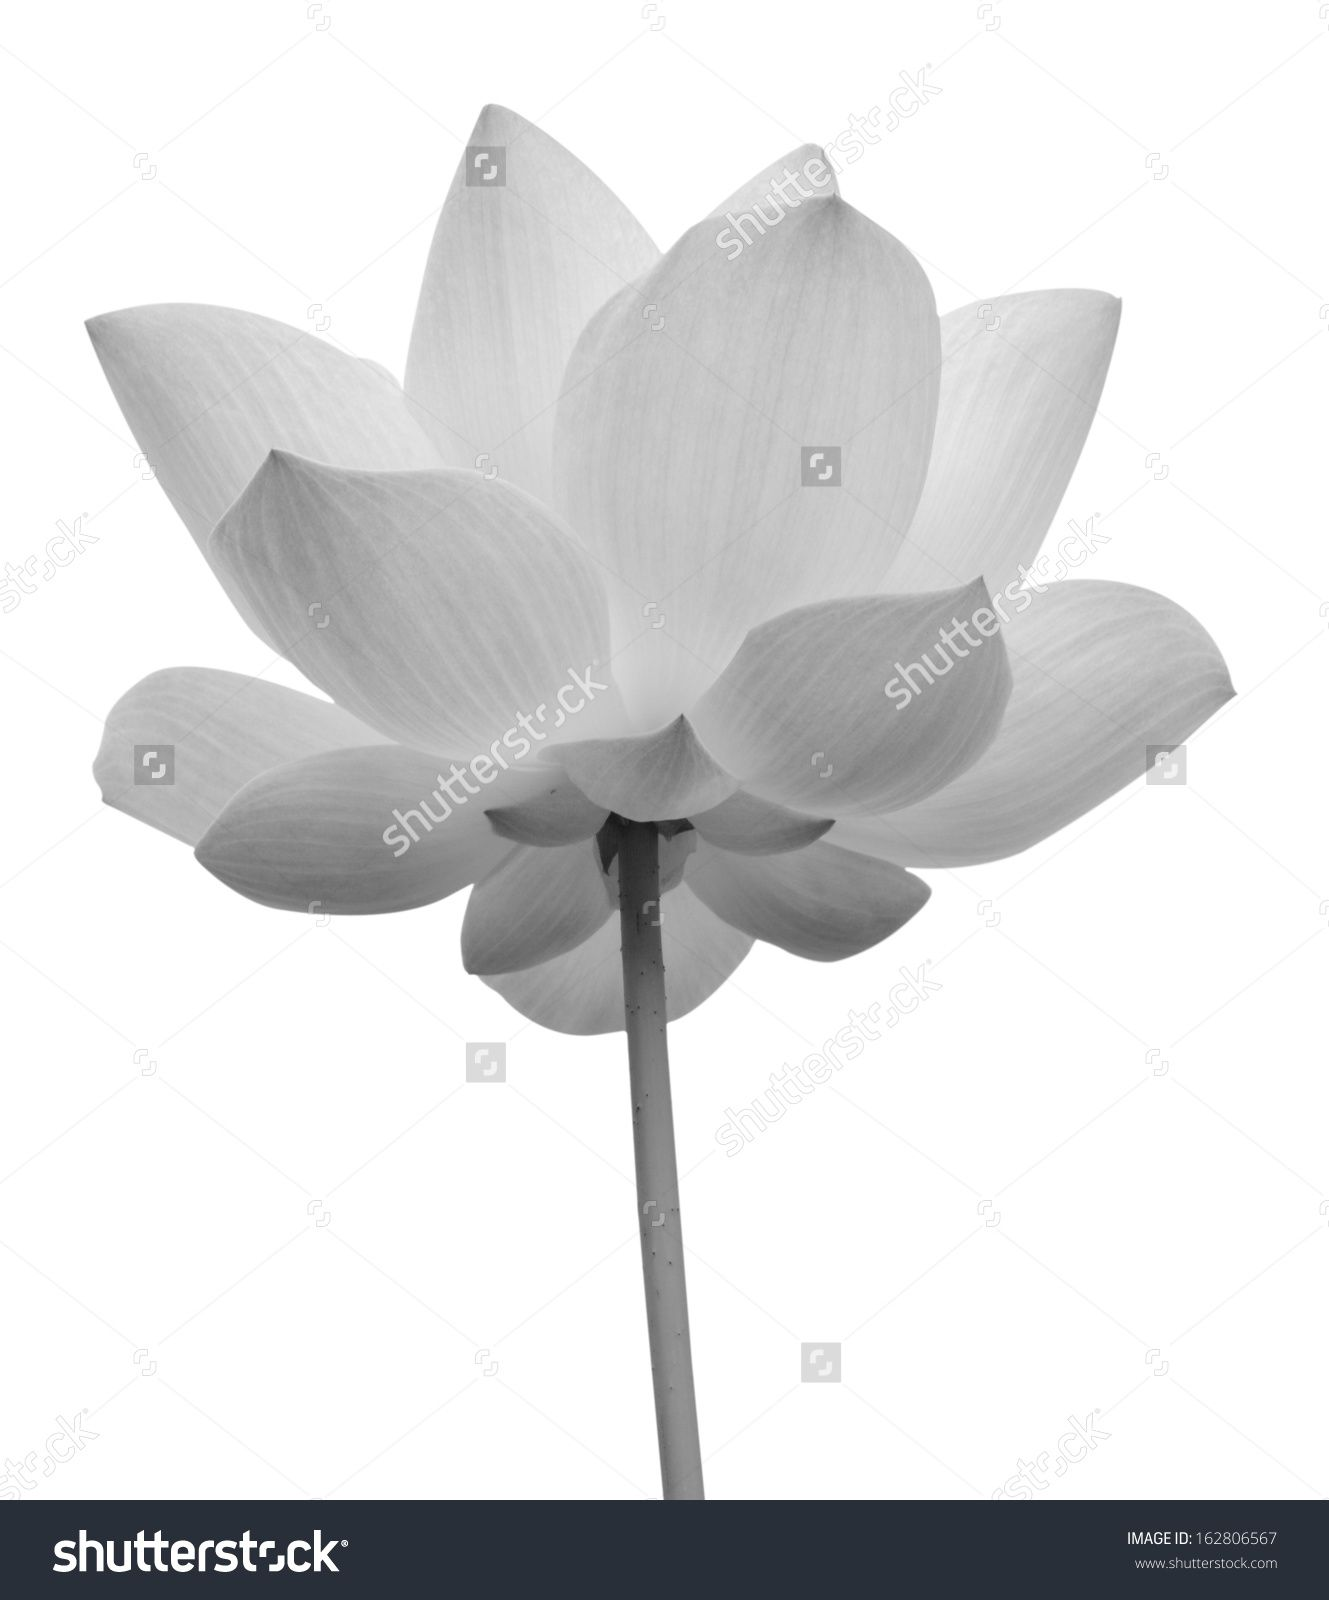 Lotus flower in black and white isolated on white background lotus flower in black and white isolated on white background izmirmasajfo